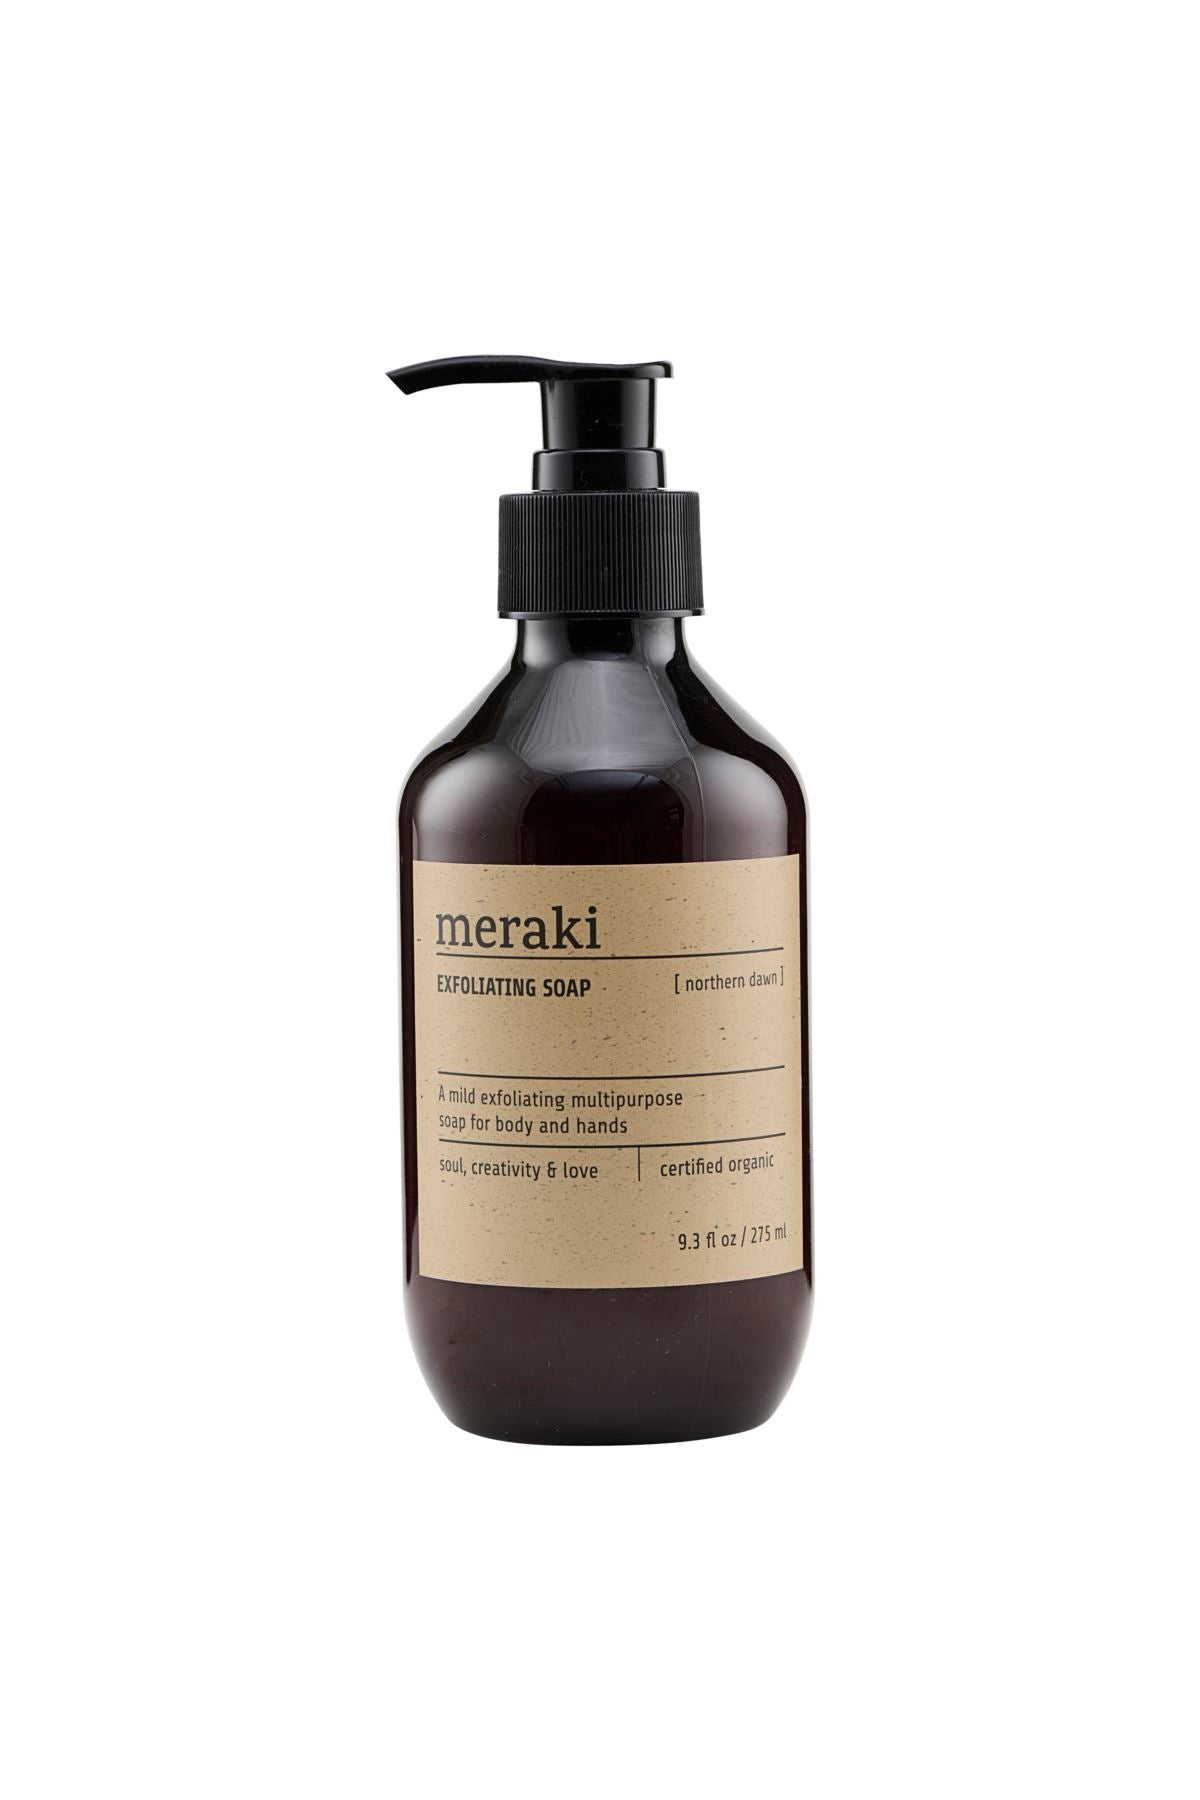 Meraki Exfoliating soap, Northern dawn